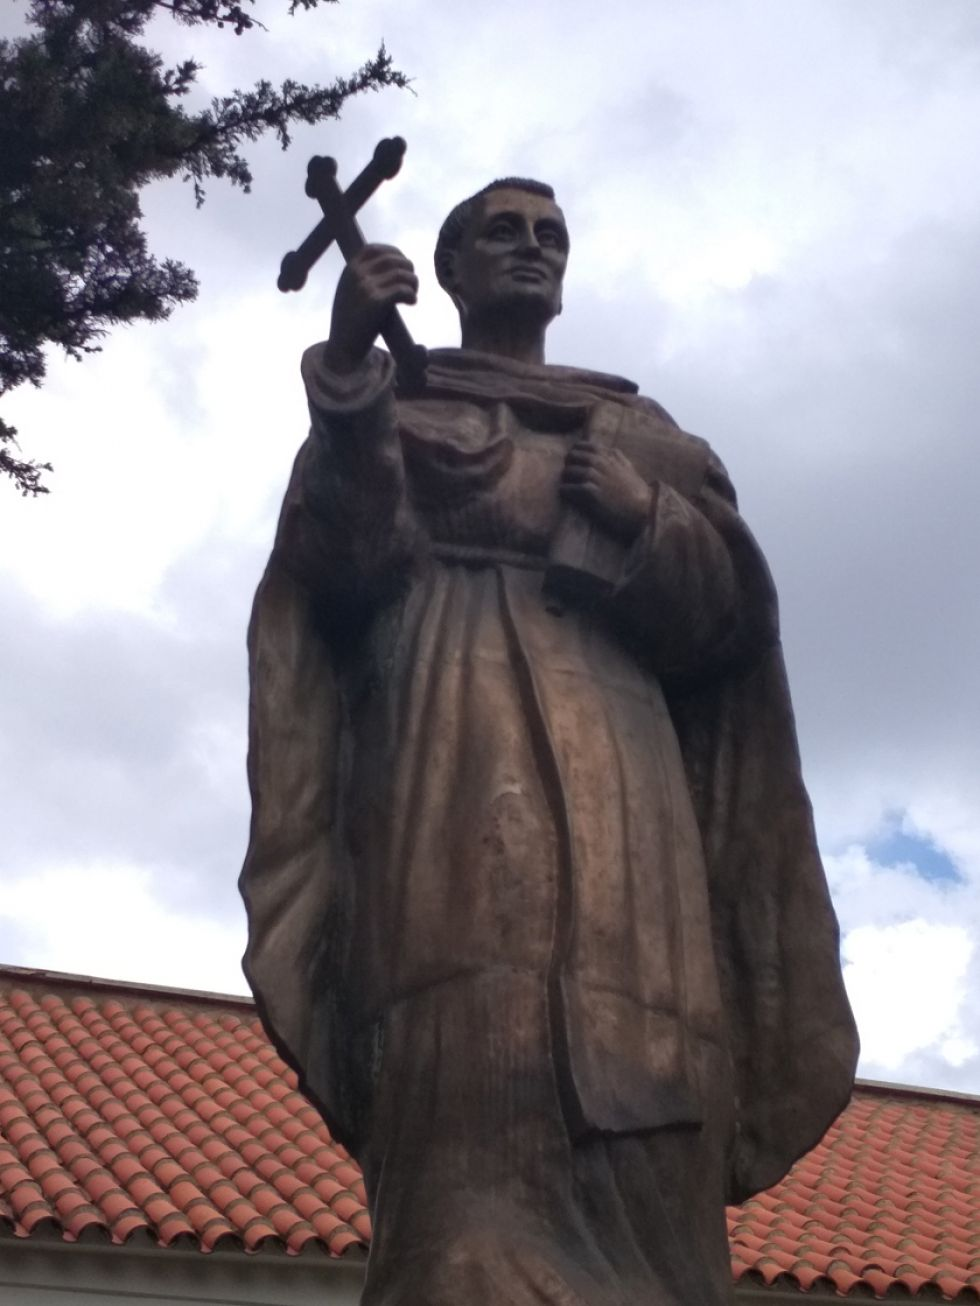 Estatua de fray Vicente Bernedo, recientemente restaurada por iniciativa privada.